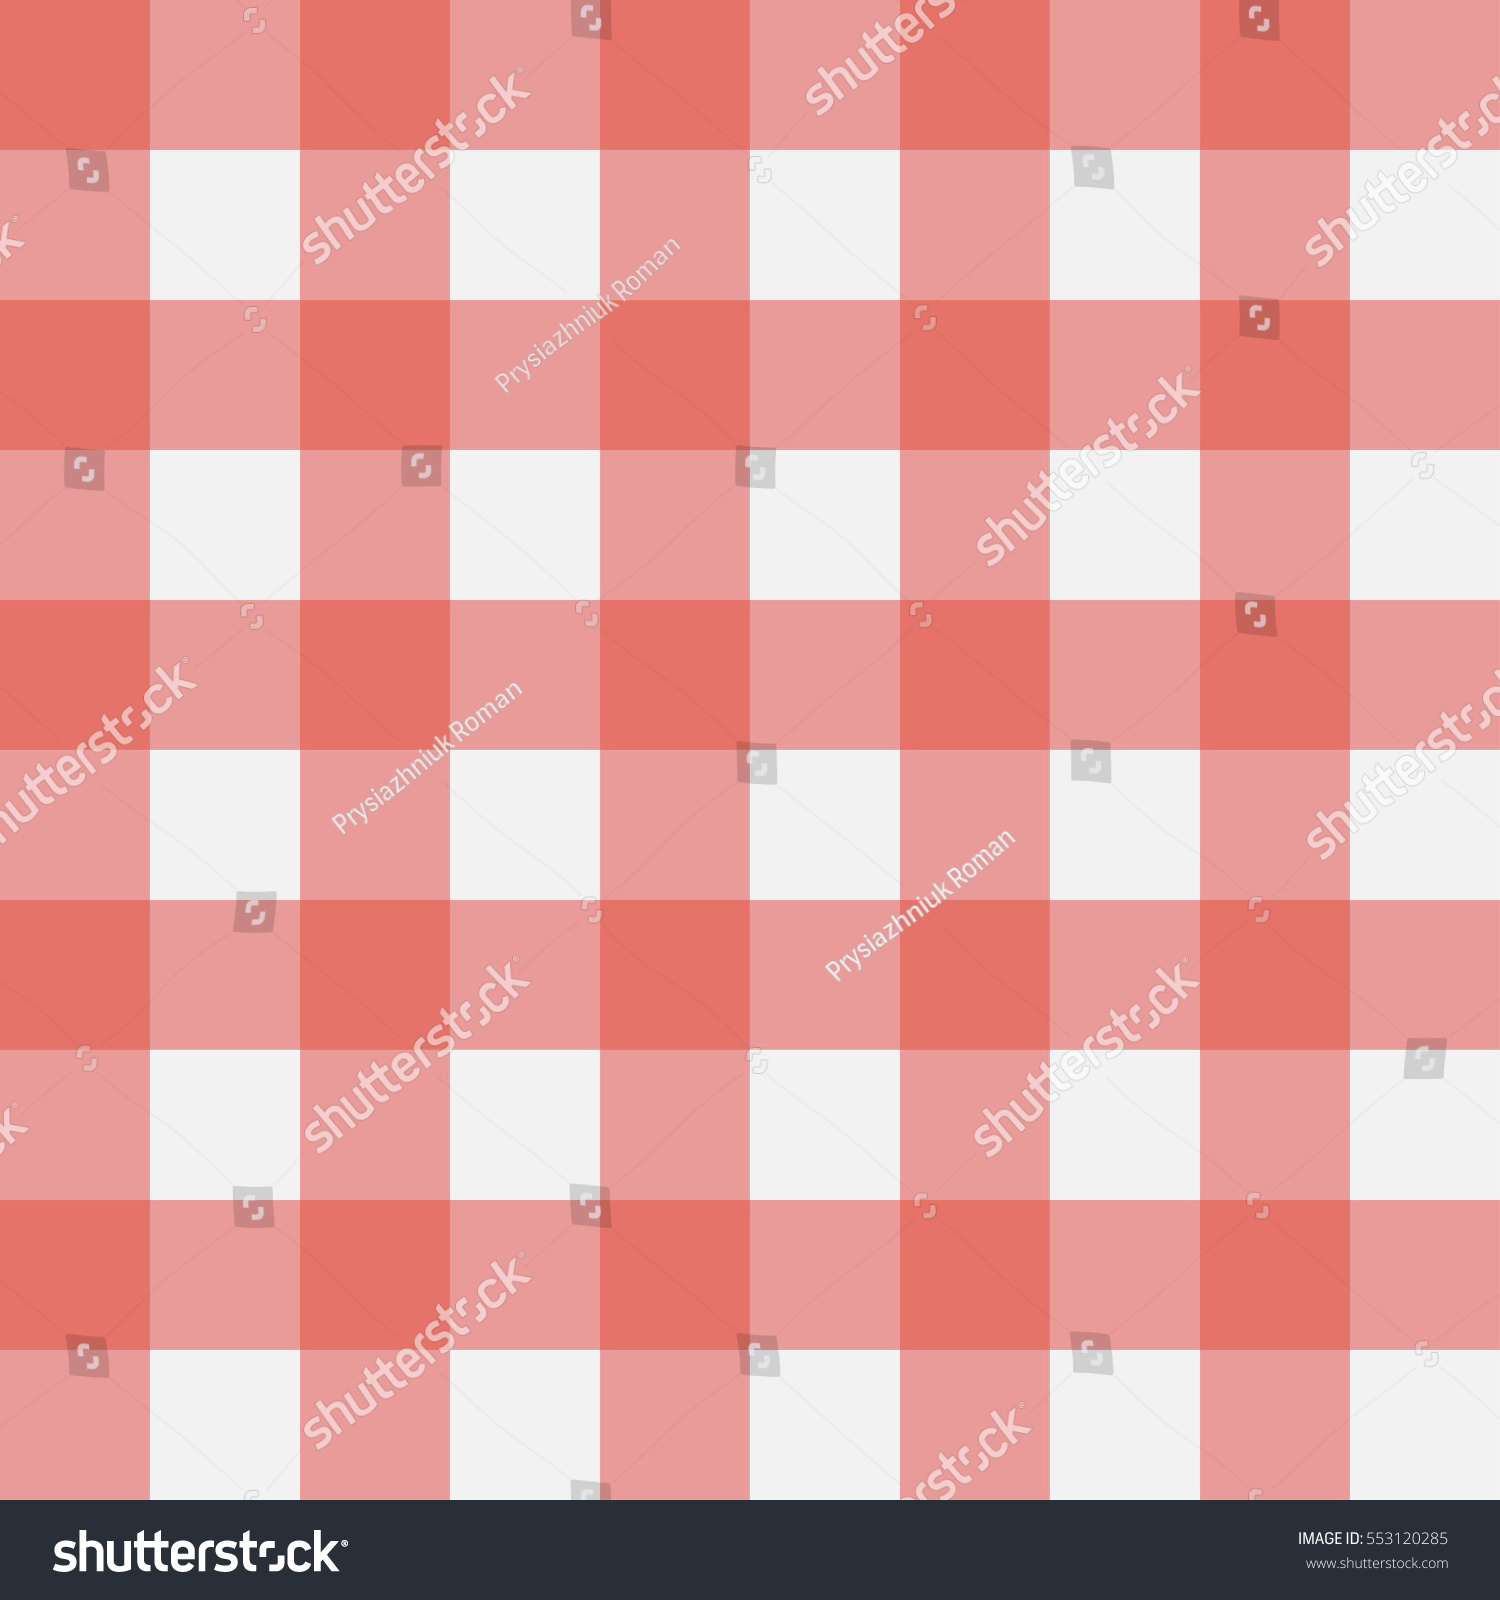 Red Gingham Seamless Pattern. Perpendicular Strips. Texture For   Plaid,  Tablecloths, Clothes